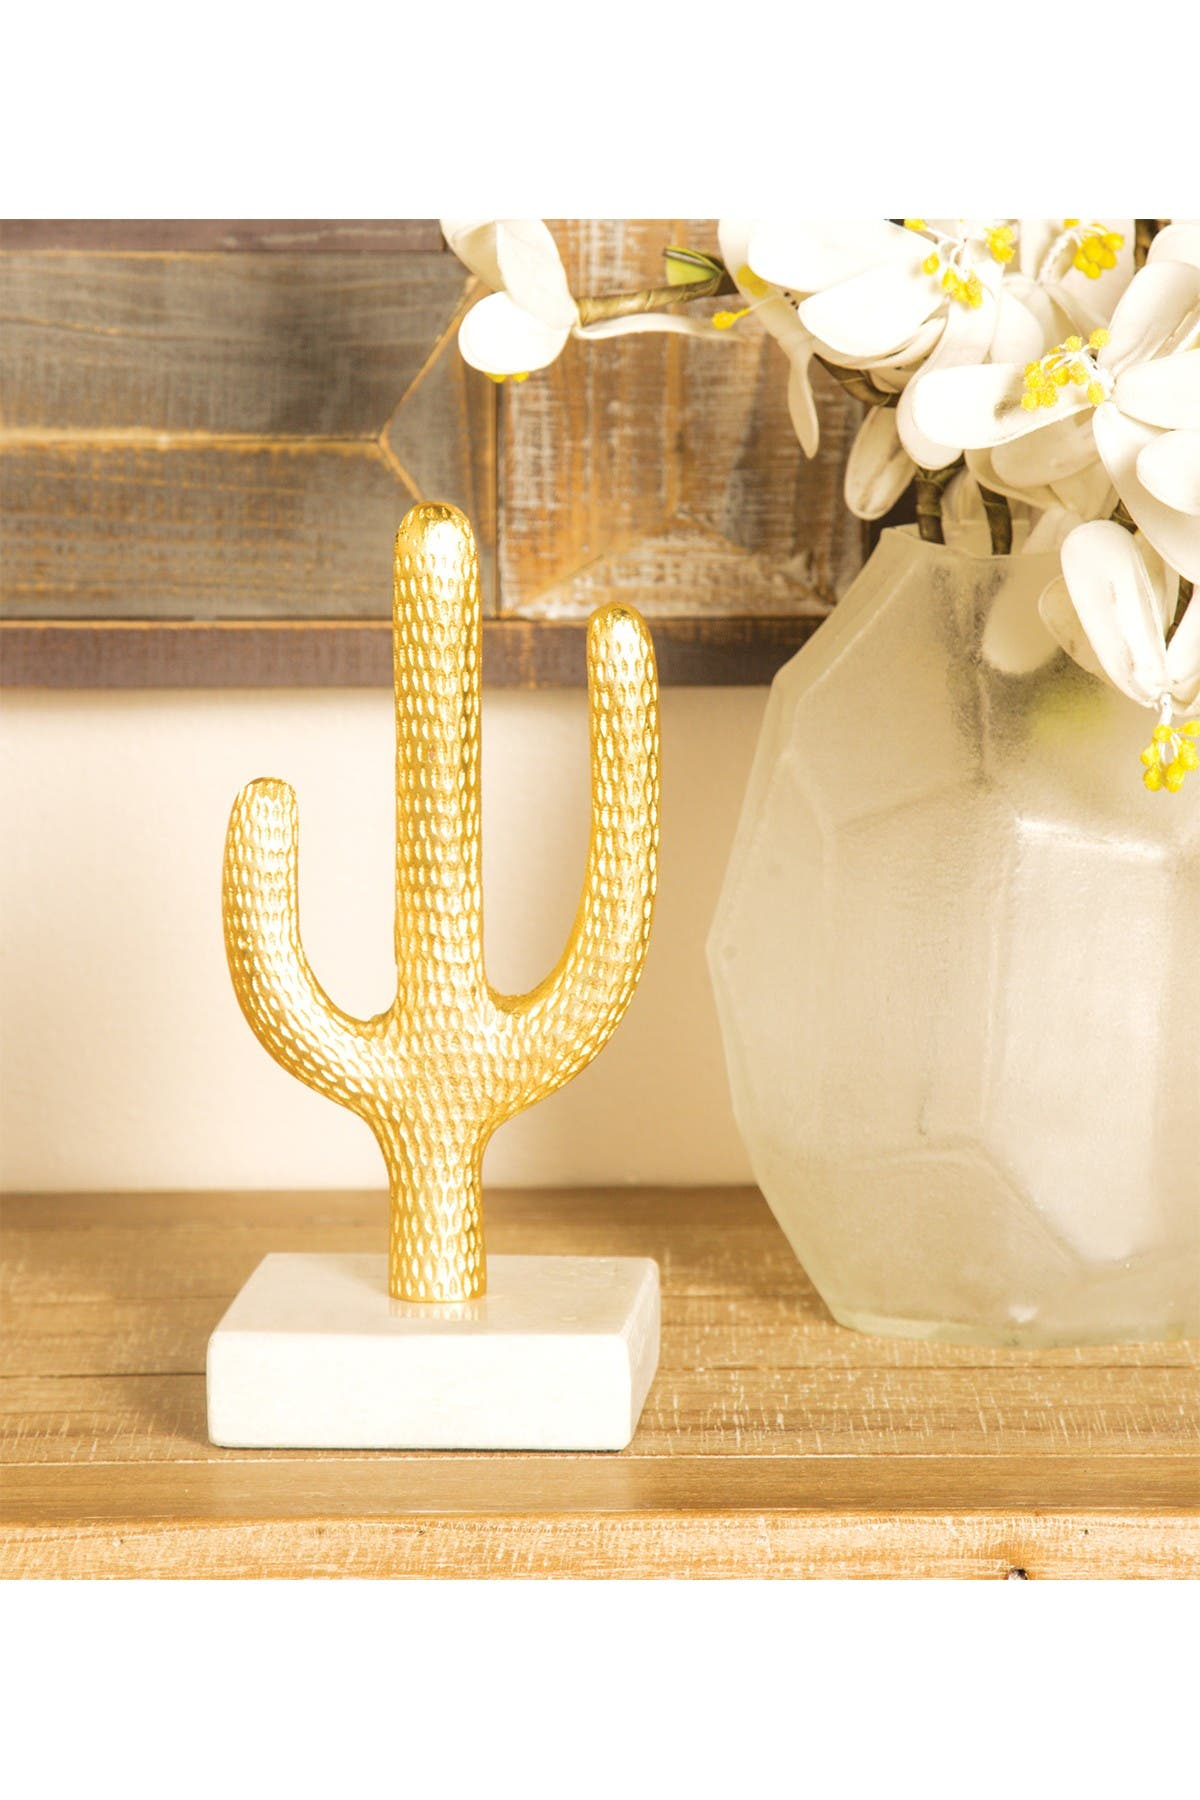 Image of CosmoLiving by Cosmopolitan Small Metallic Gold Cactus Sculpture Table Decor on White Marble Base